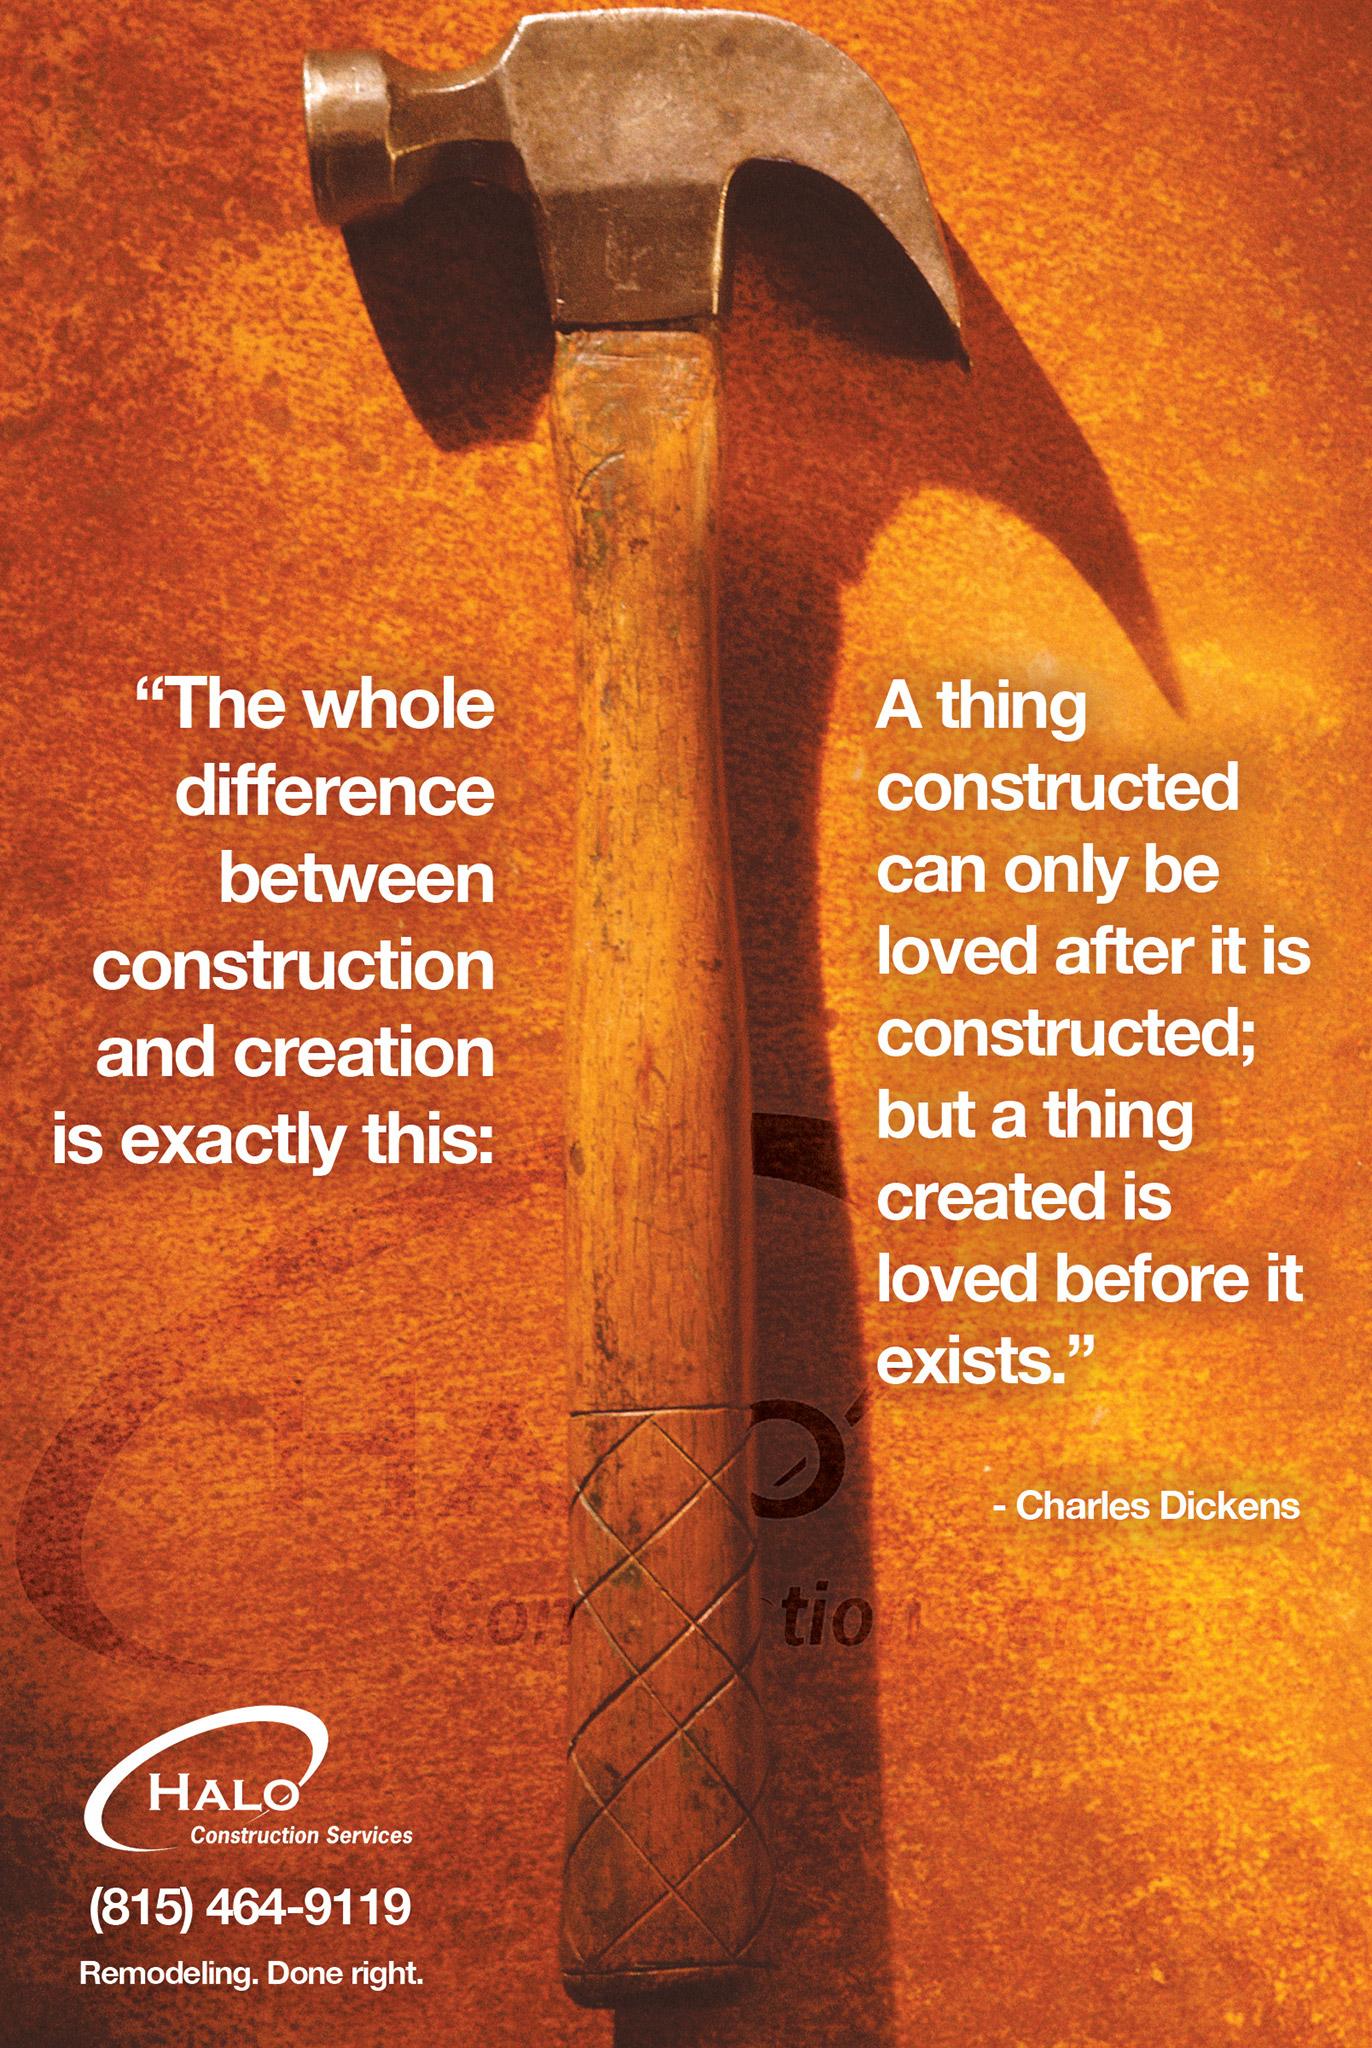 The difference between construction and creation